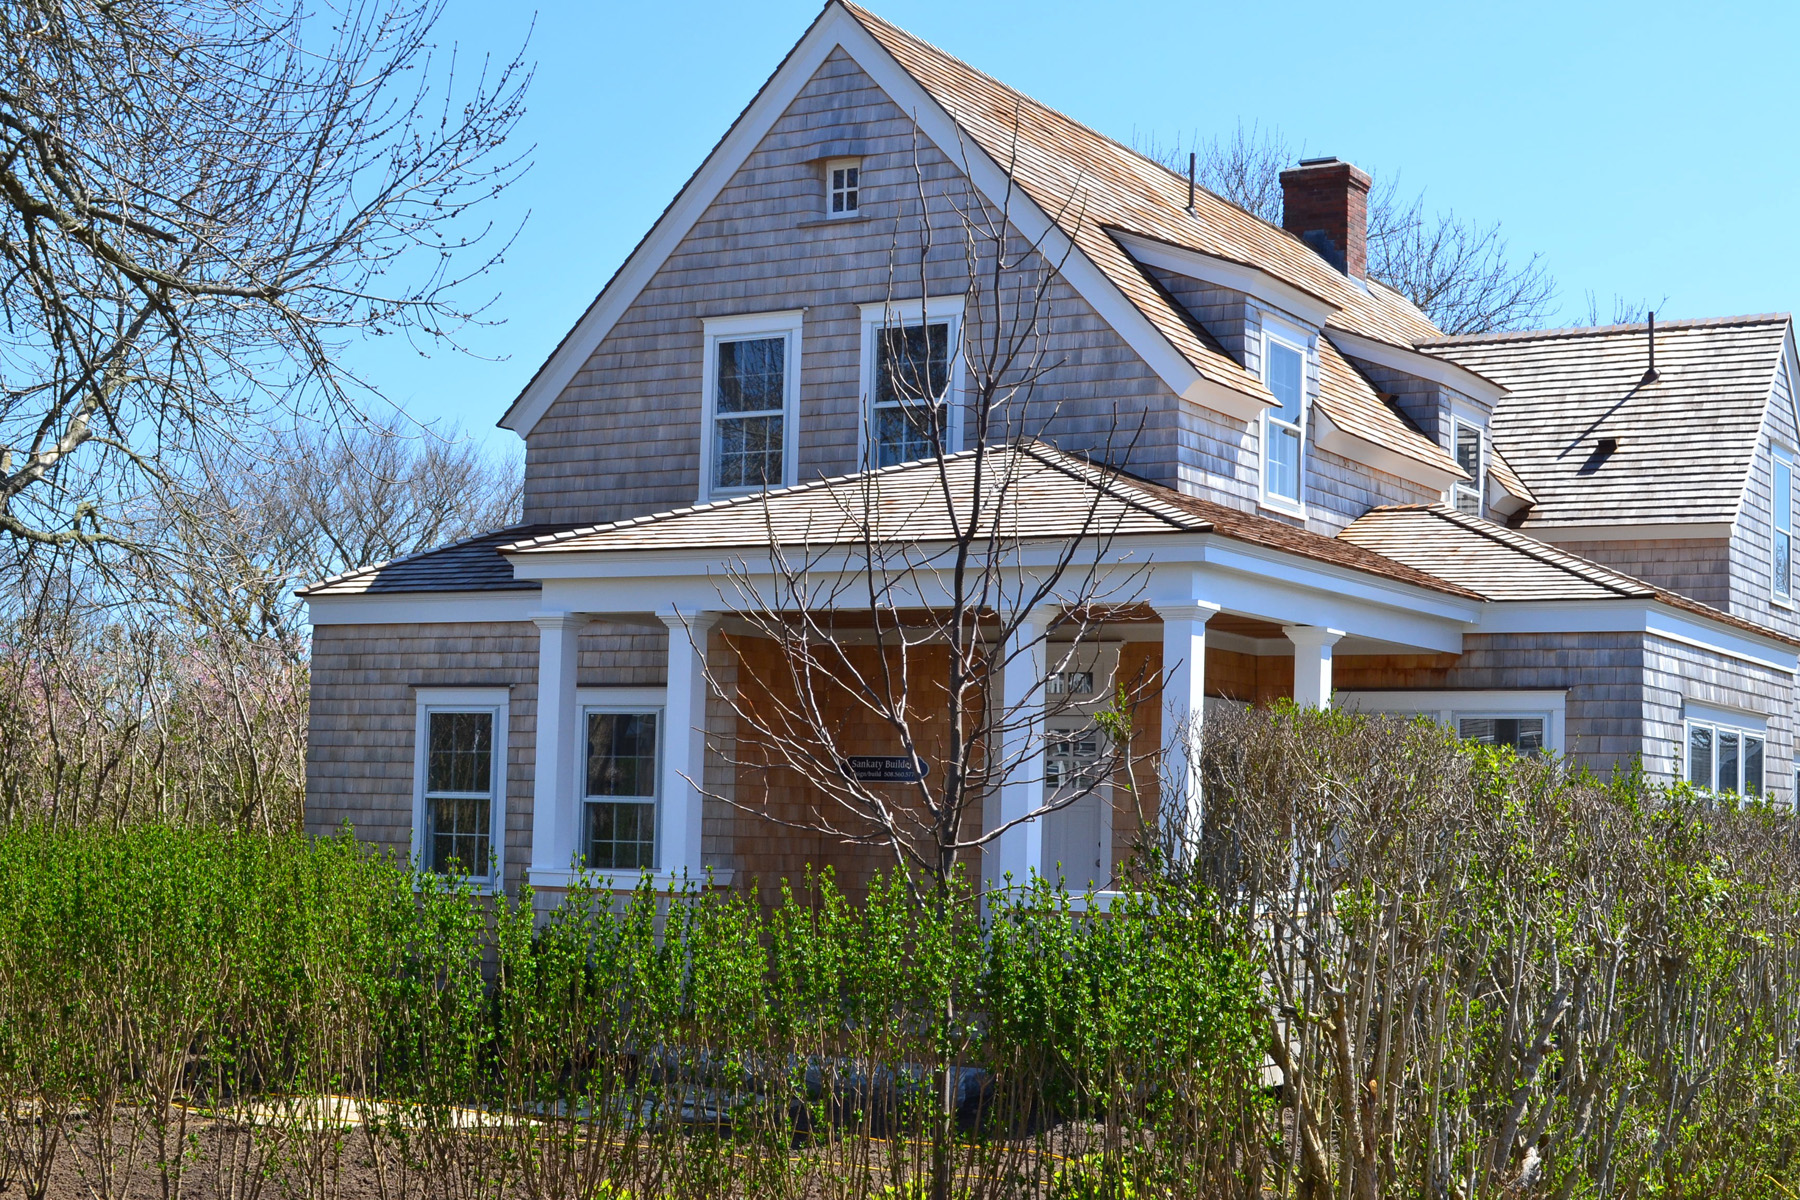 Single Family Home for Sale at Beautiful New Home 5 Bunker Hill Road Nantucket, Massachusetts, 02564 United States